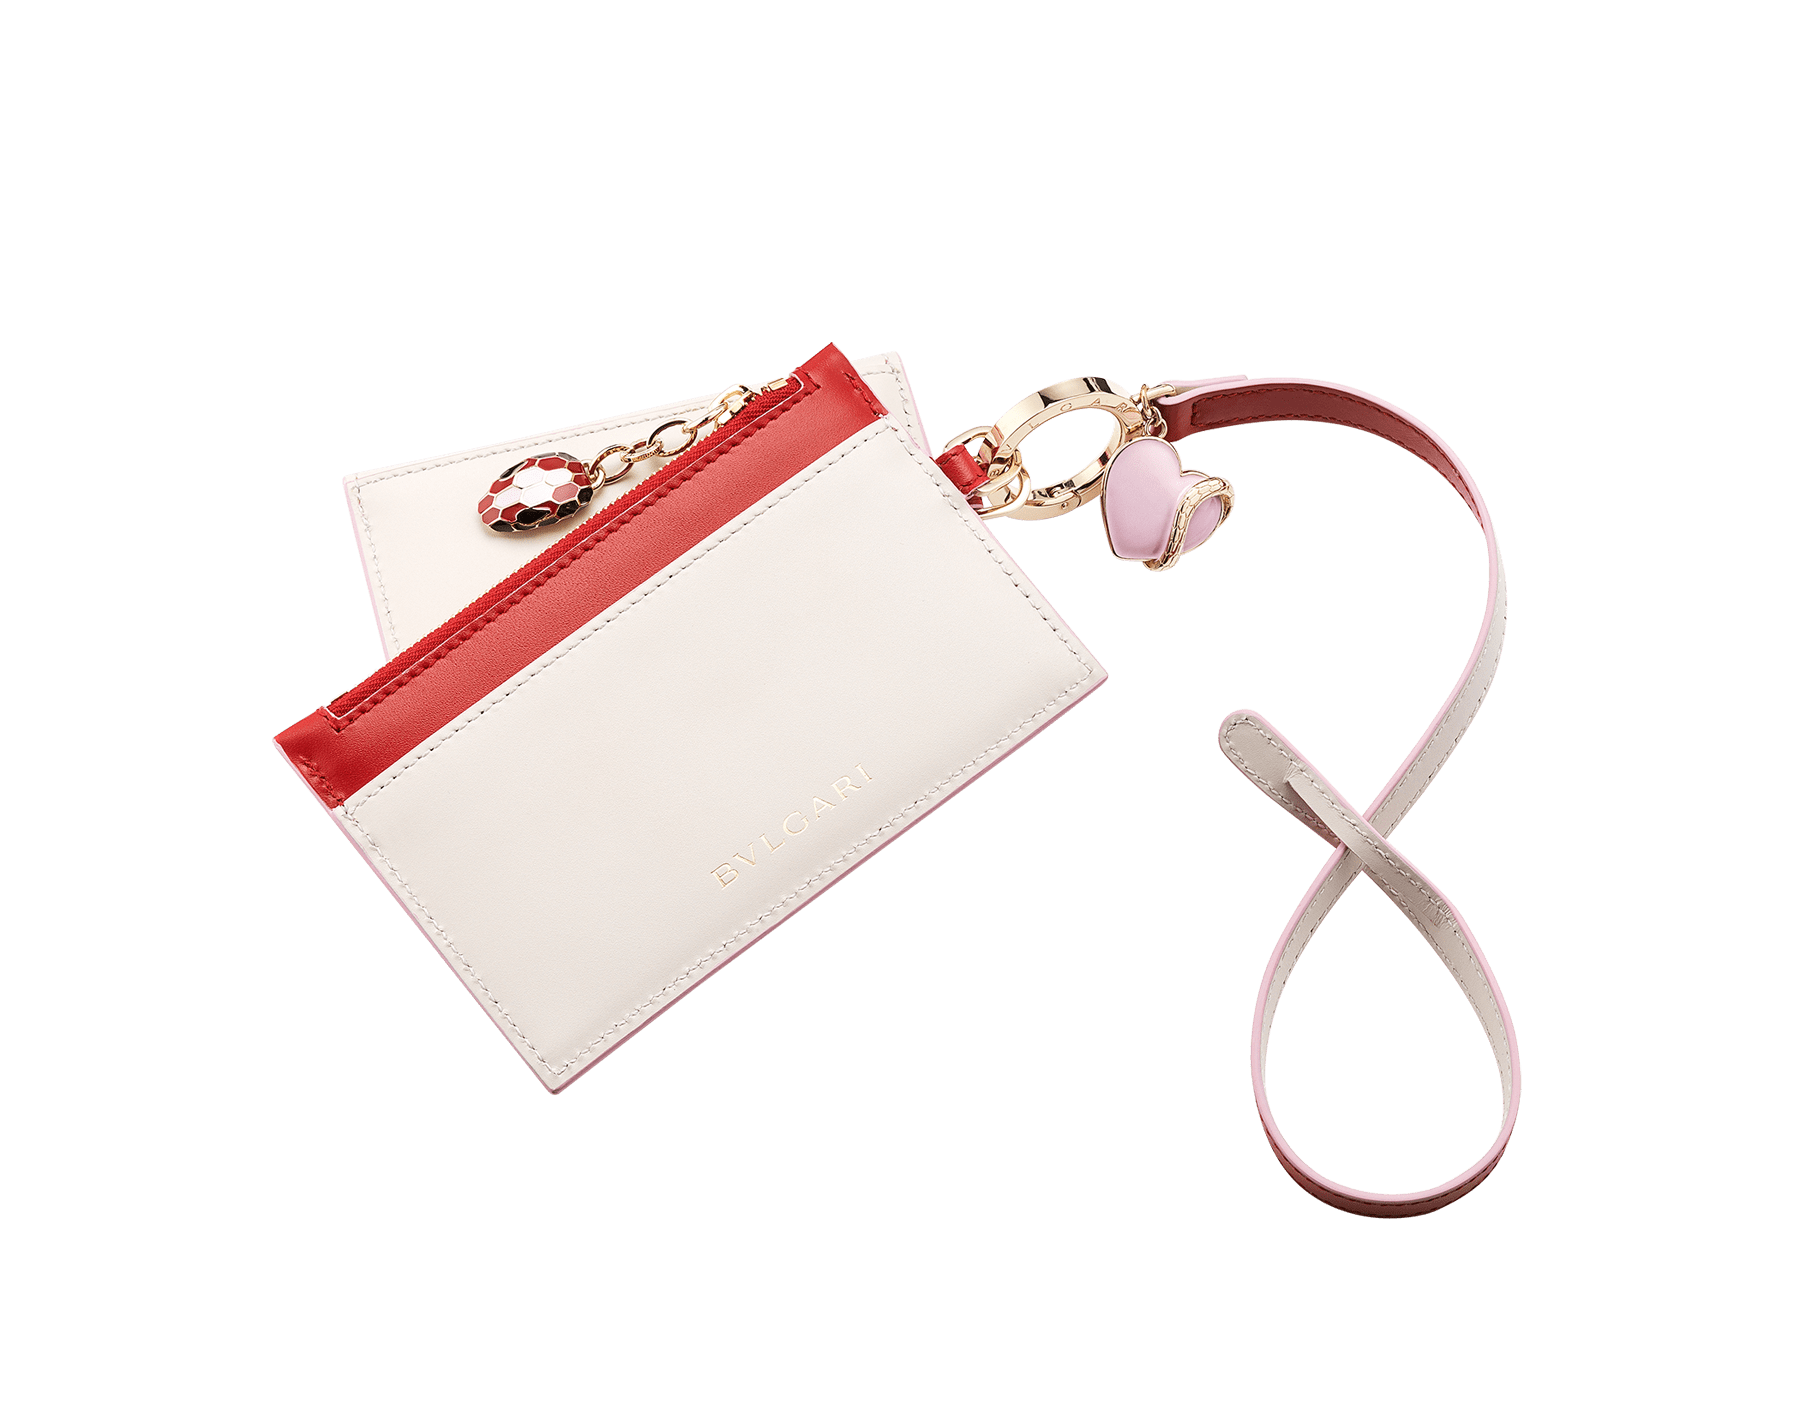 Serpenti Forever Duo card holder and coin purse in carmine jasper and rosa di Francia calf leather. Brass light gold plated key ring with a pink heart-shaped charm, snakehead stud closure and snakehead zip puller with black, carmine jasper and rosa di Francia enamel, and black enamel eyes. 289555 image 2